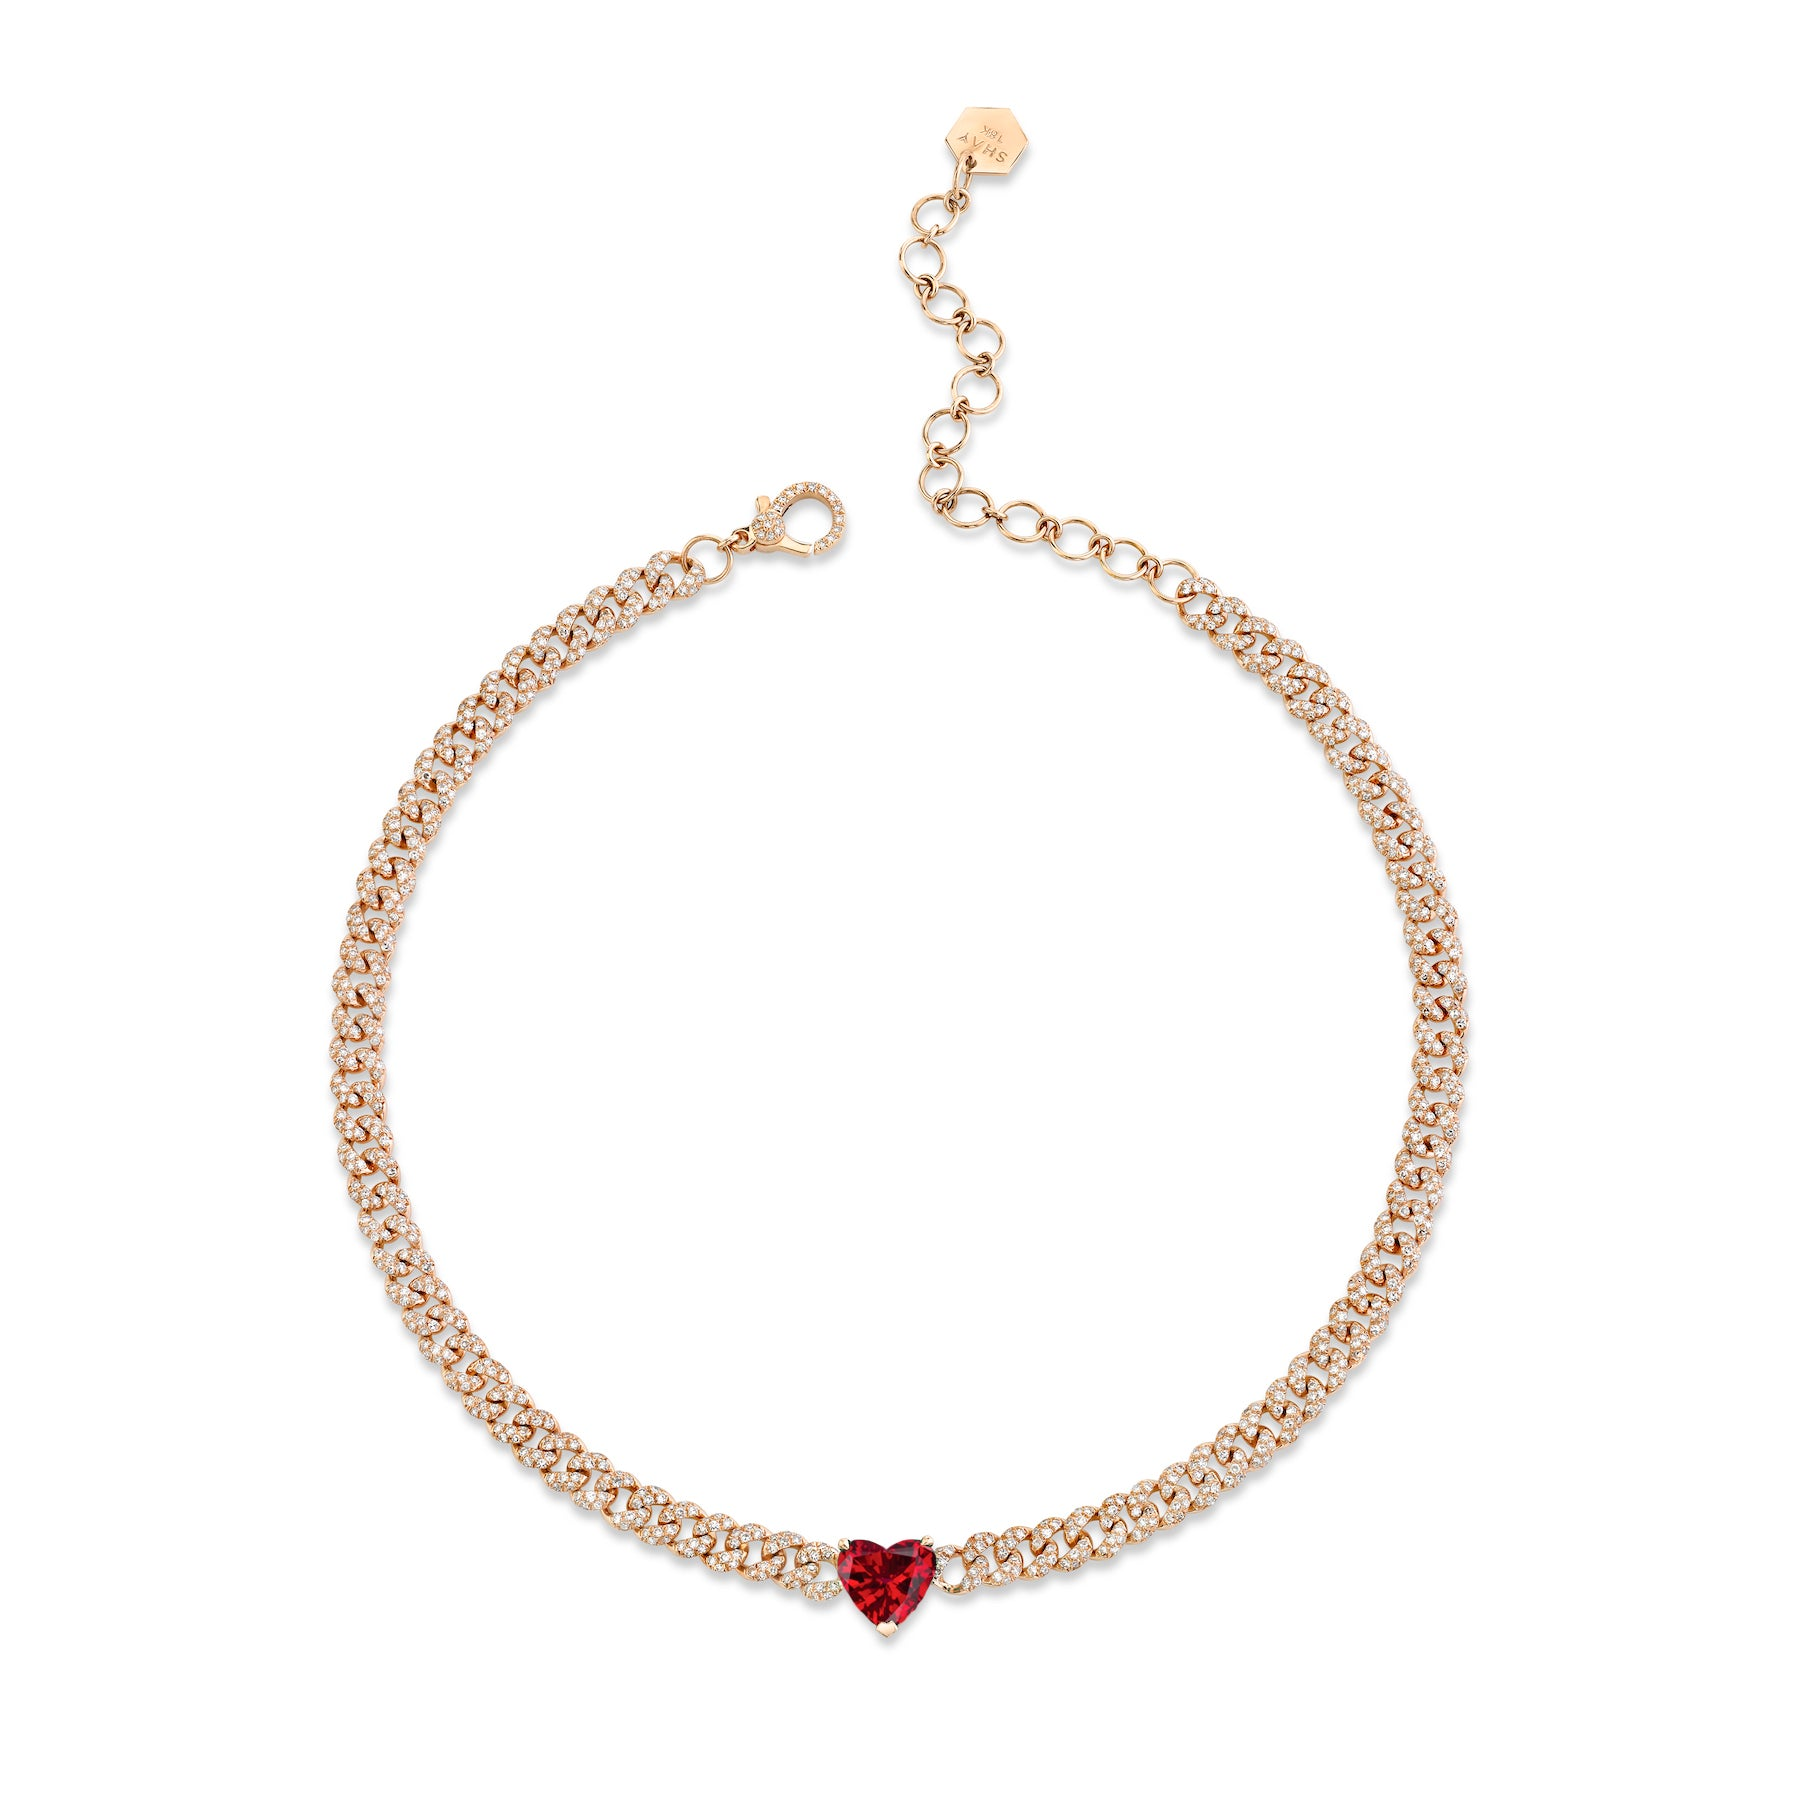 RUBY HEART MINI PAVE LINK NECKLACE